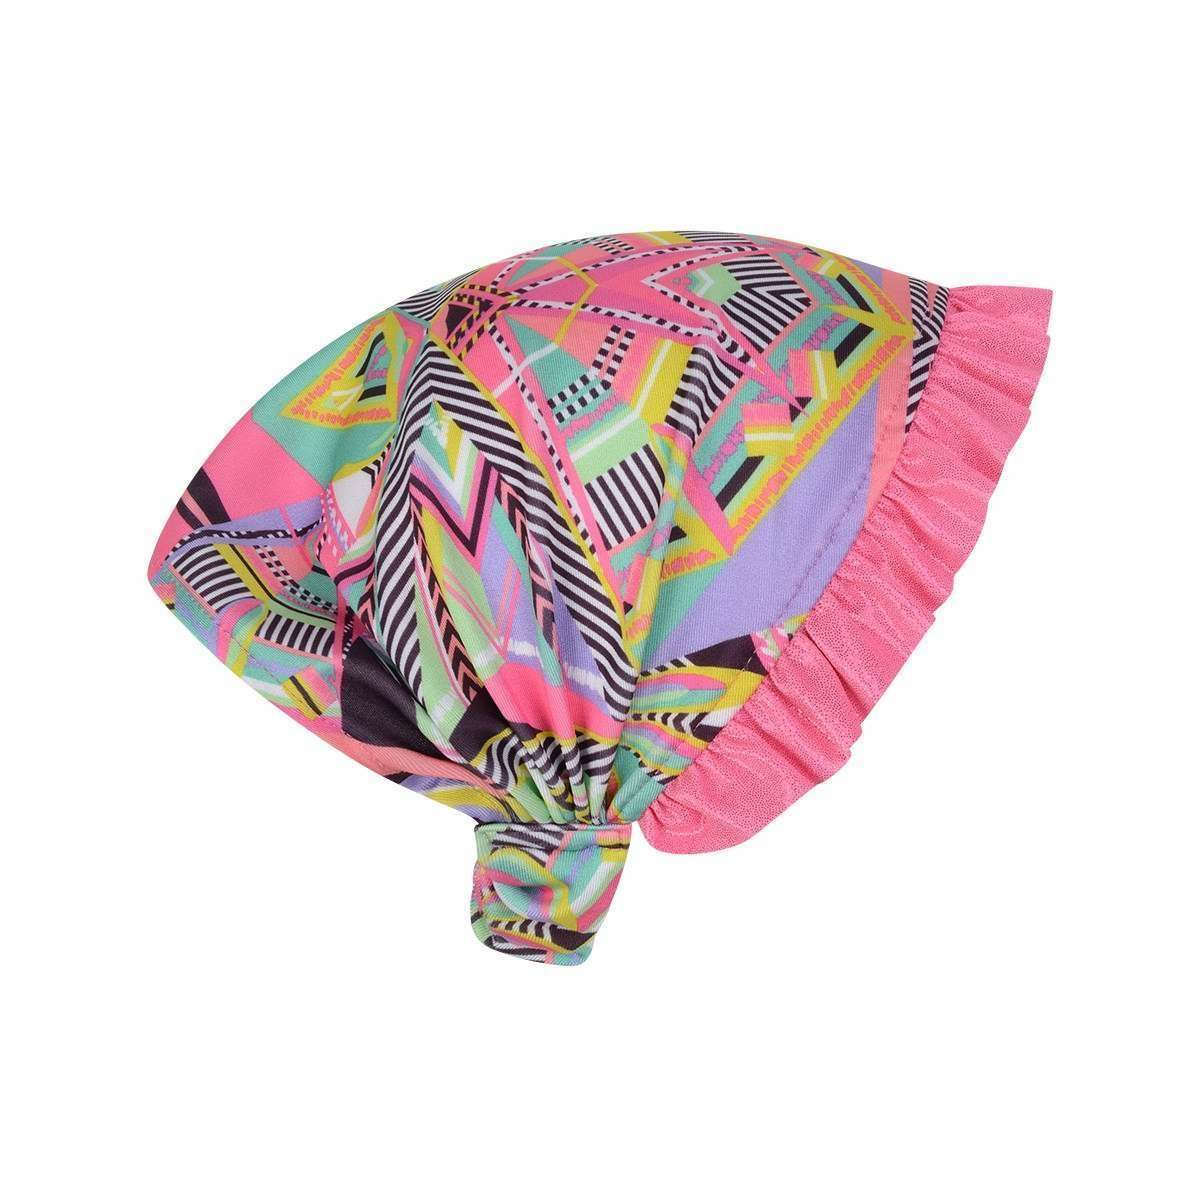 Multicoloured Aztec Inspired Head Scarf